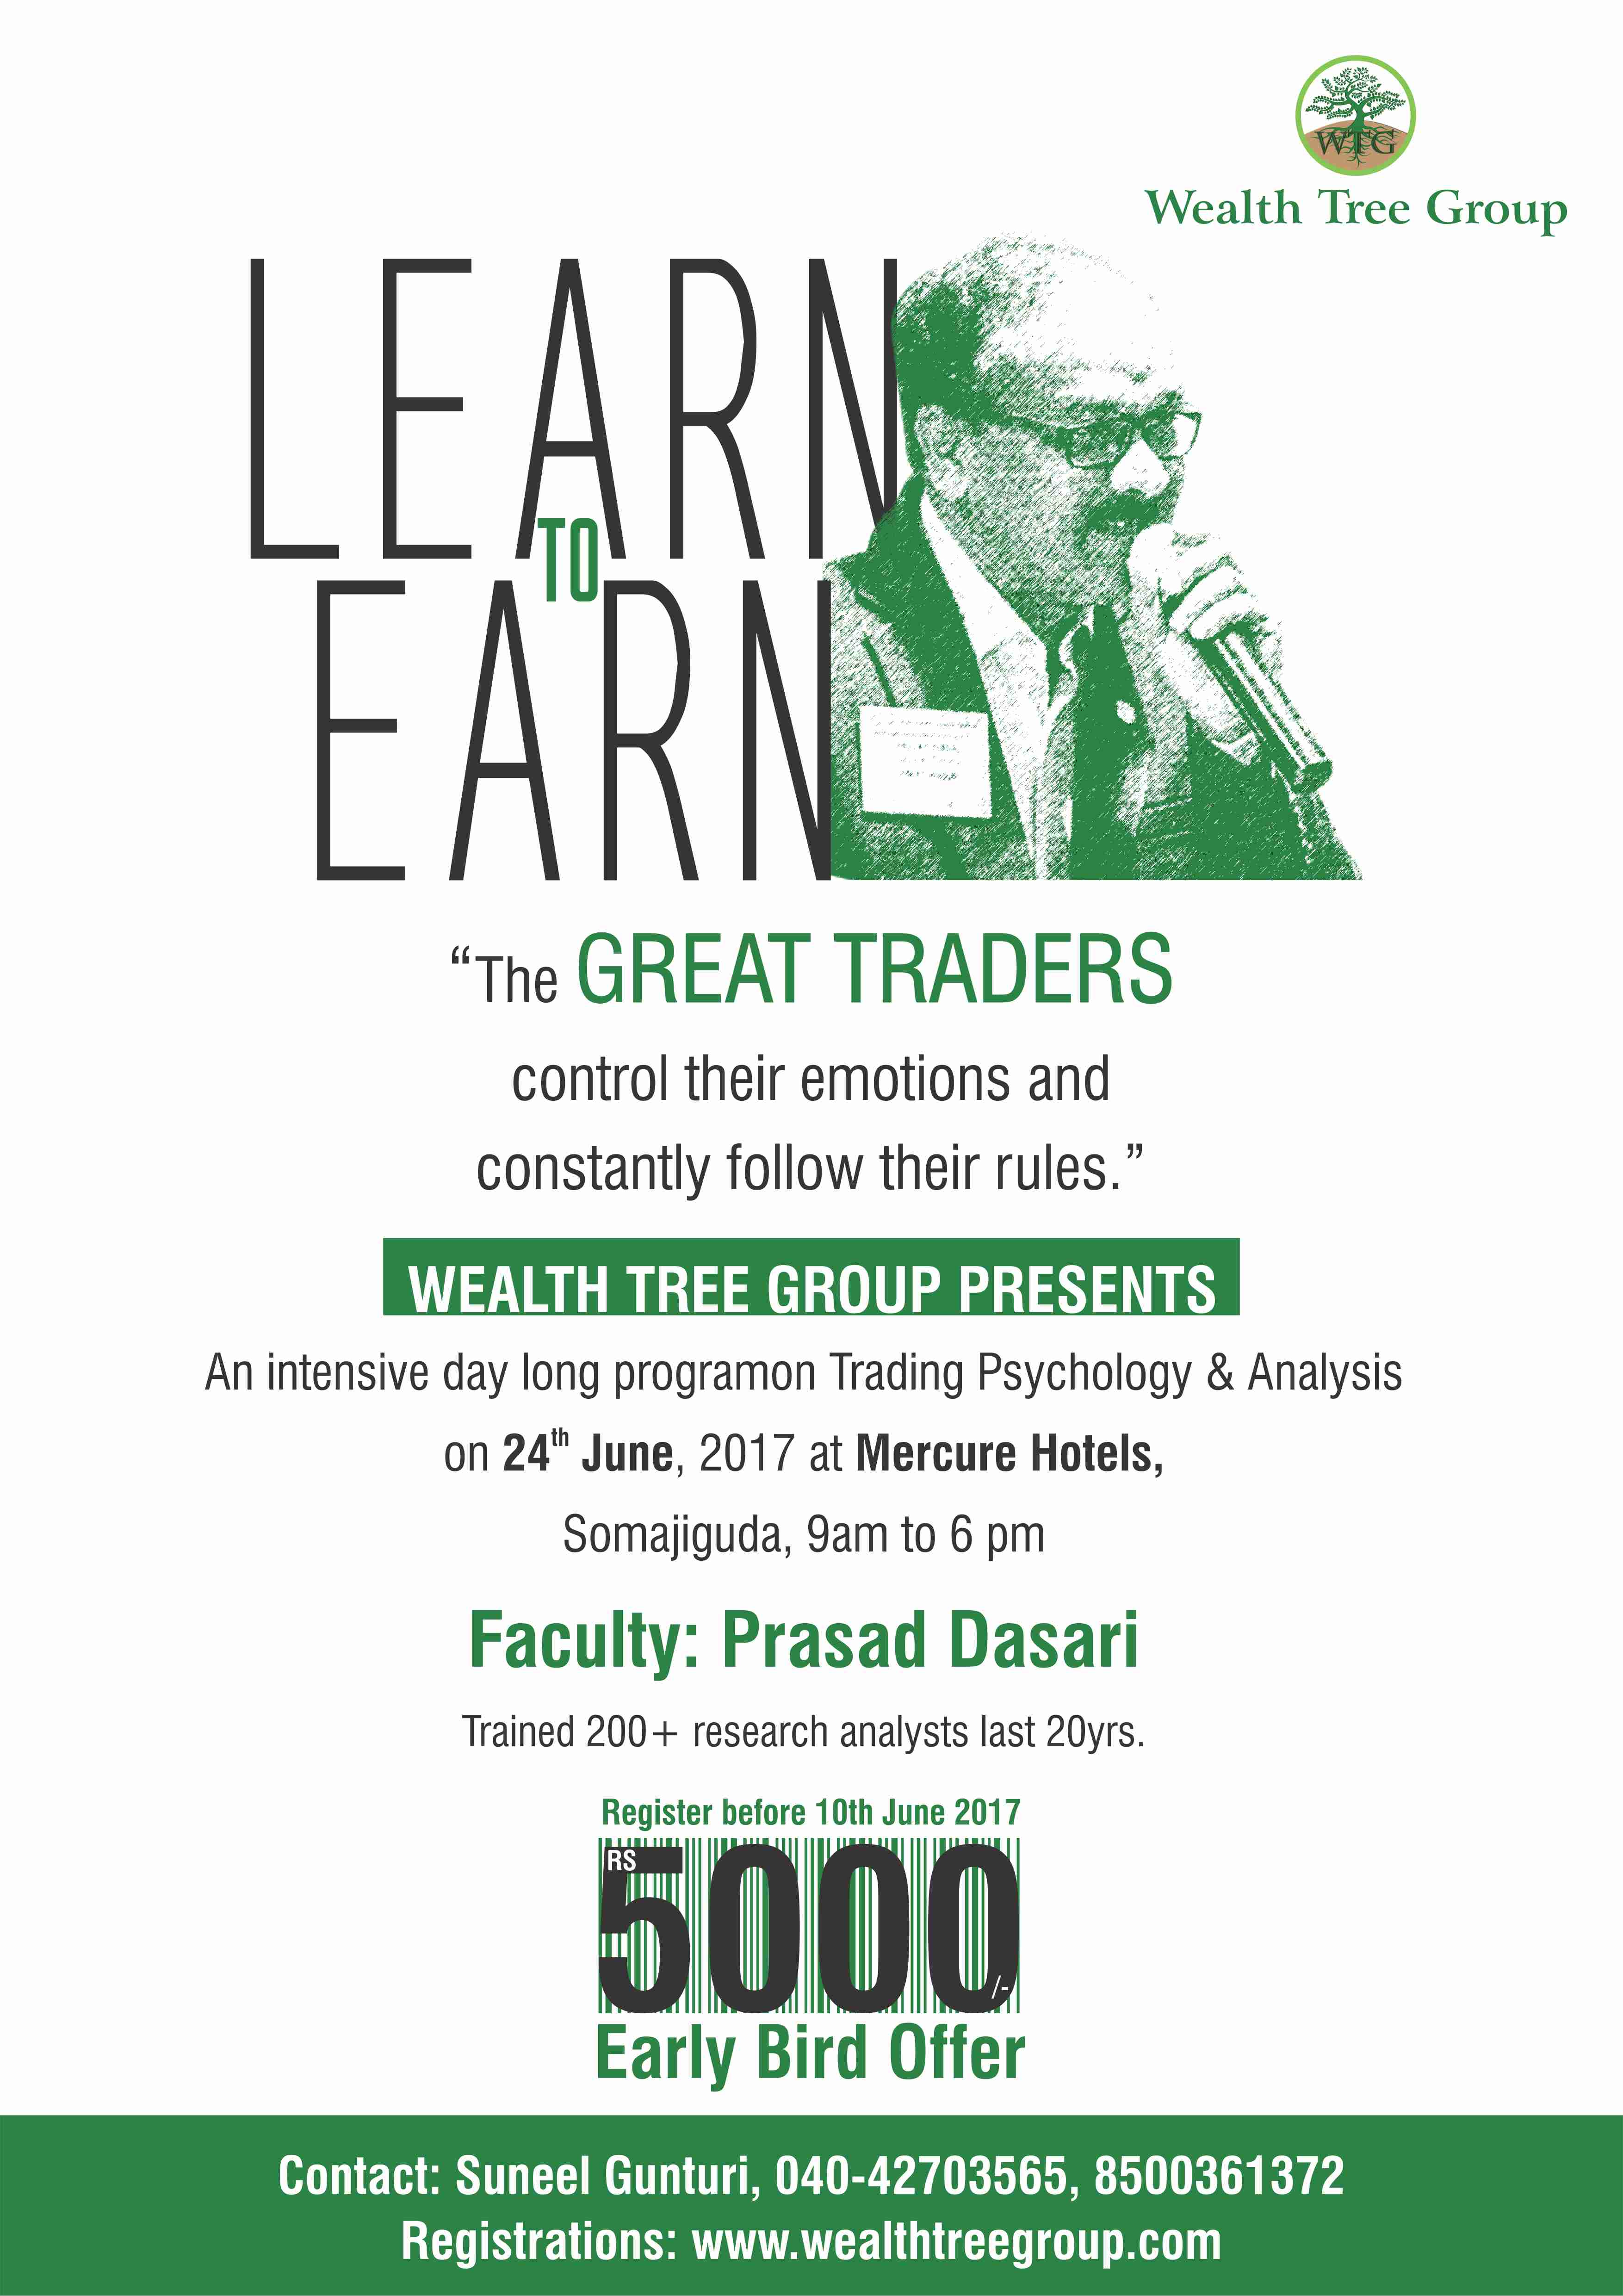 An intensive day long program on Trading psychology and Analysis